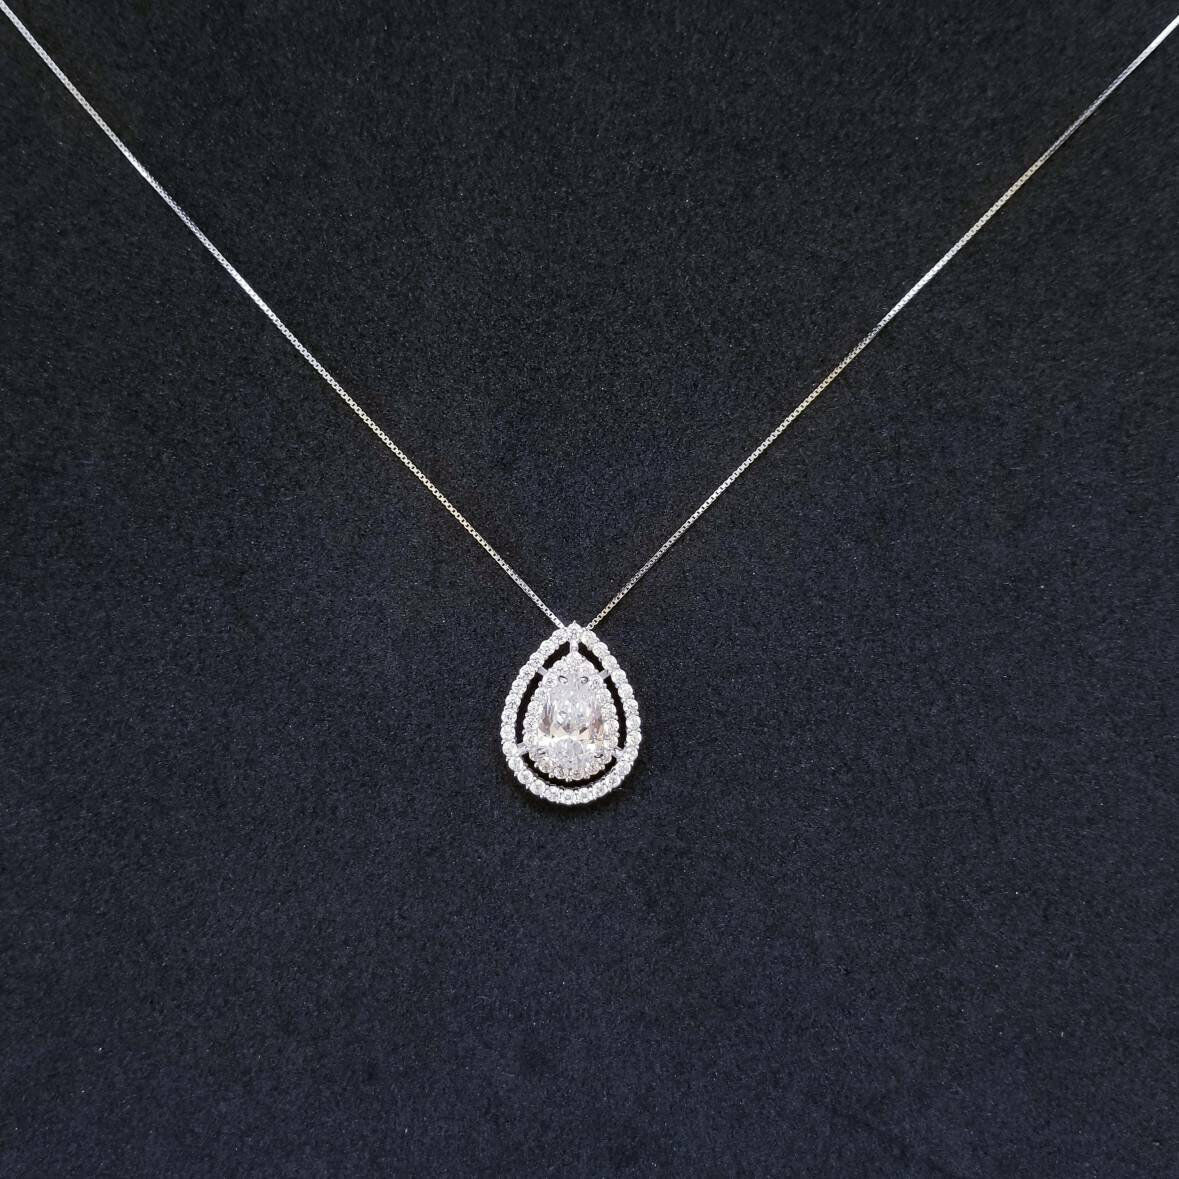 Primary image for Sterling Silver Pear Cut Halo CZ Pendant Free Chain